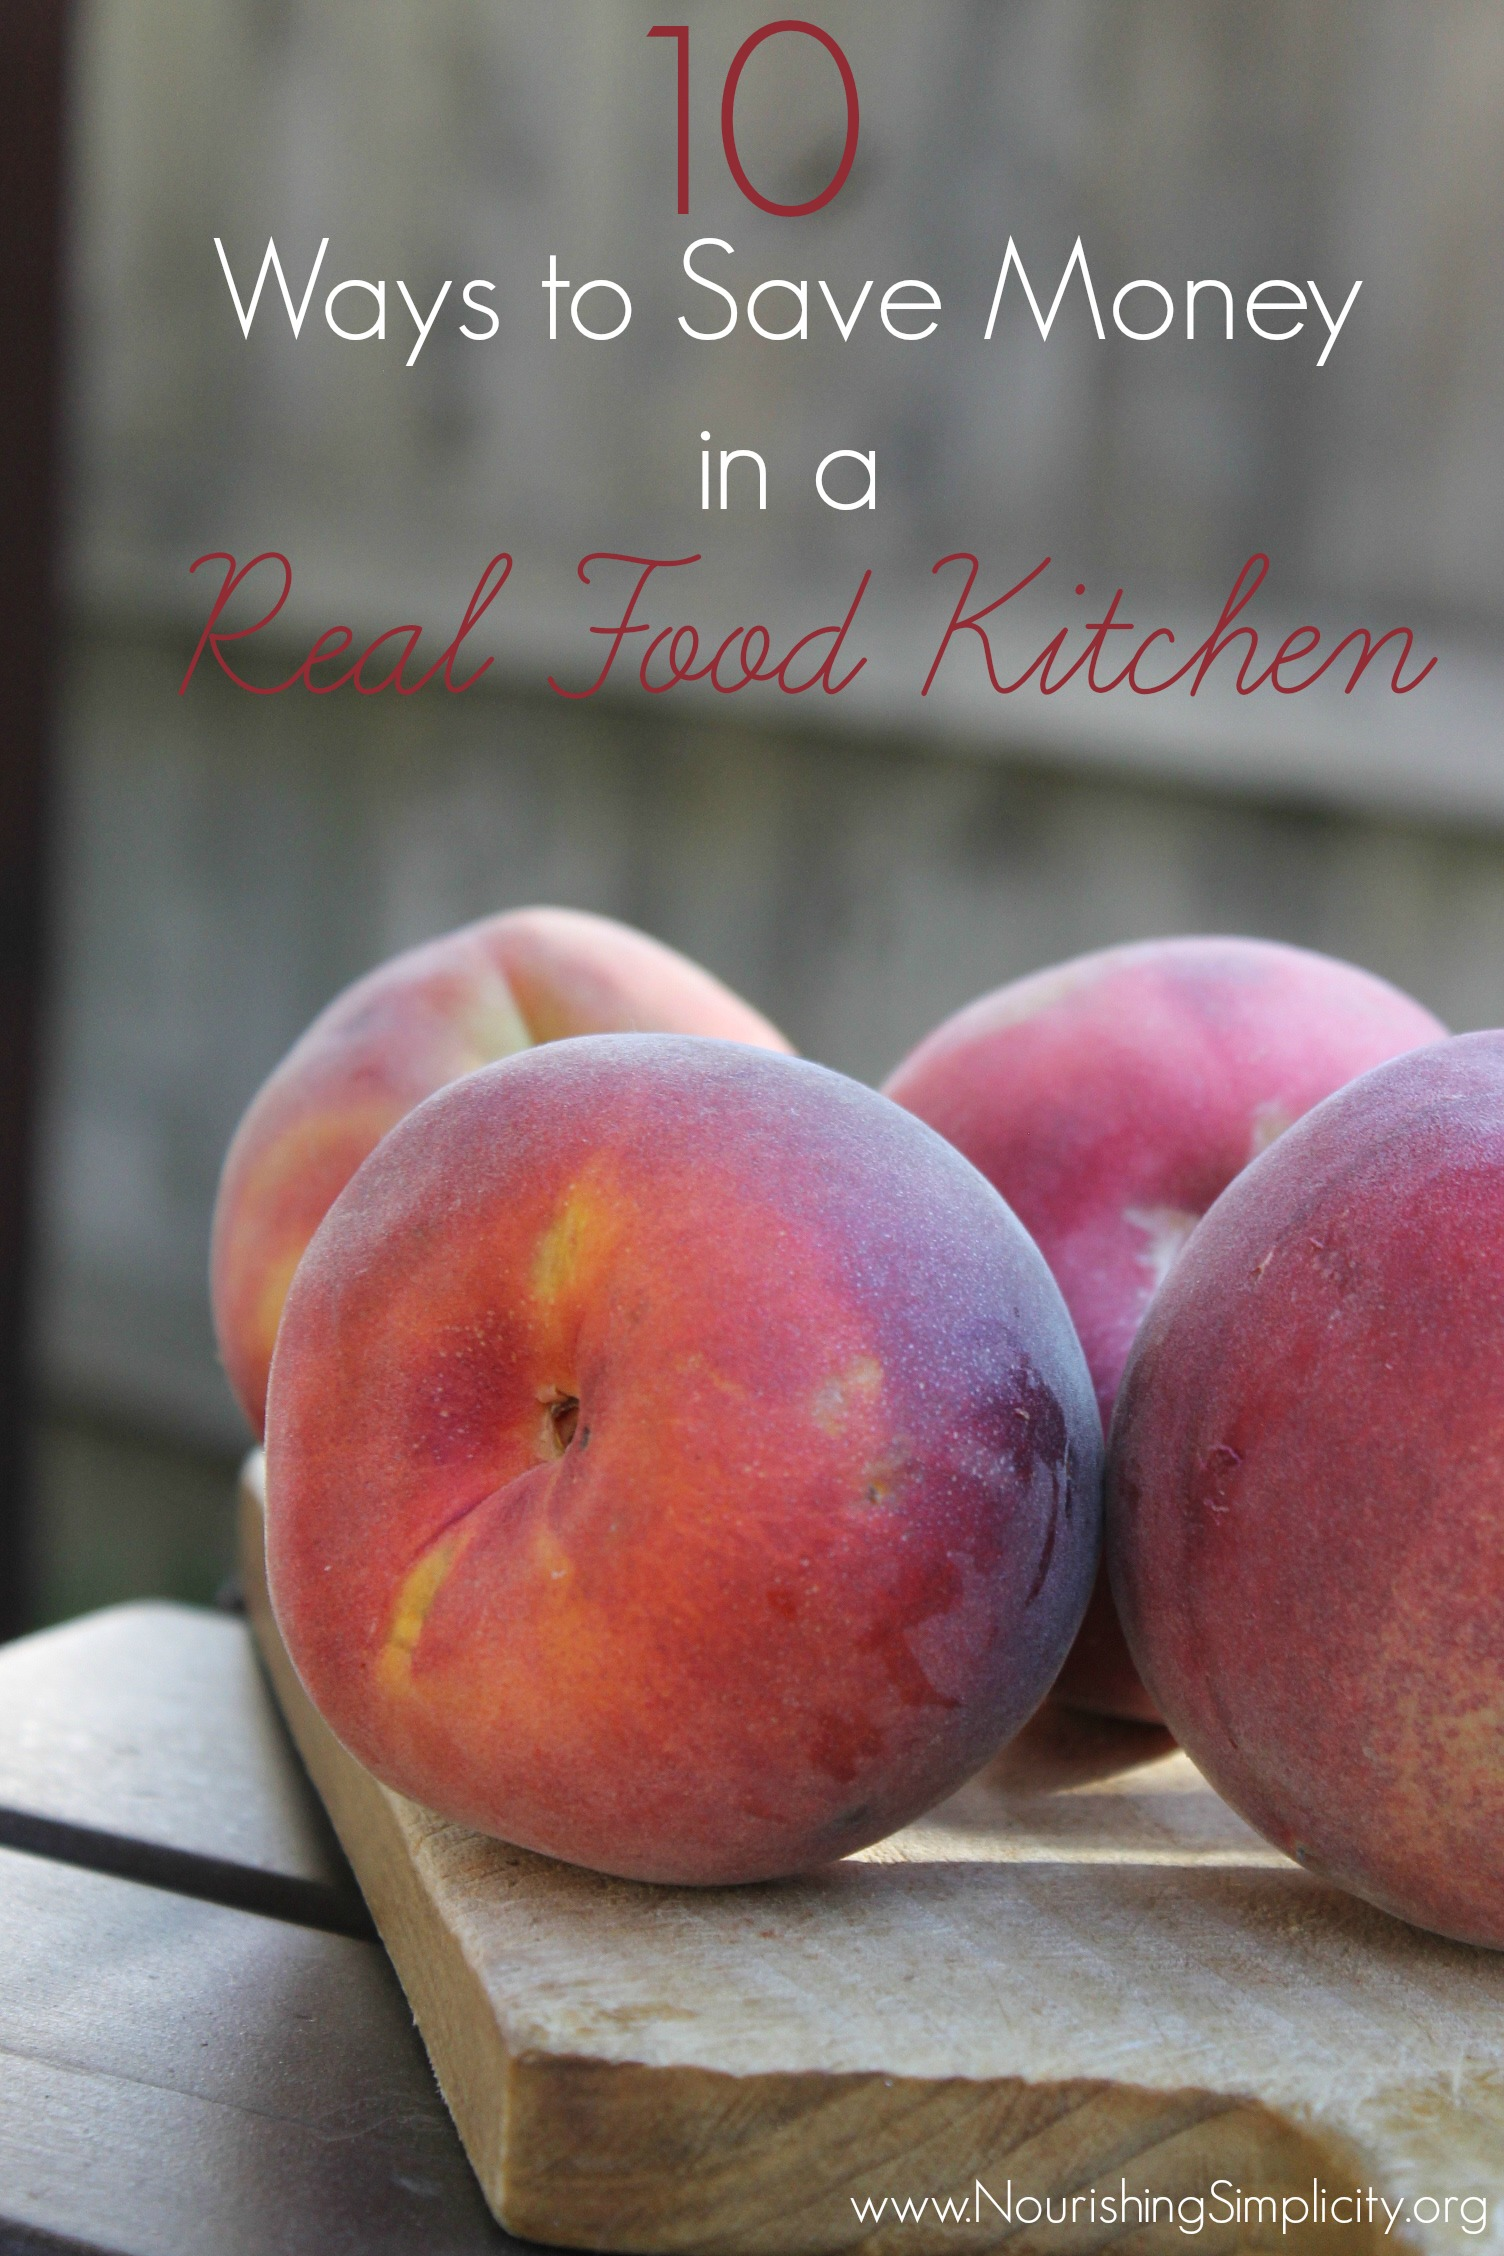 10 Ways to Save Money in a Real Food Kitchen- www.nourishingsimplicity.org